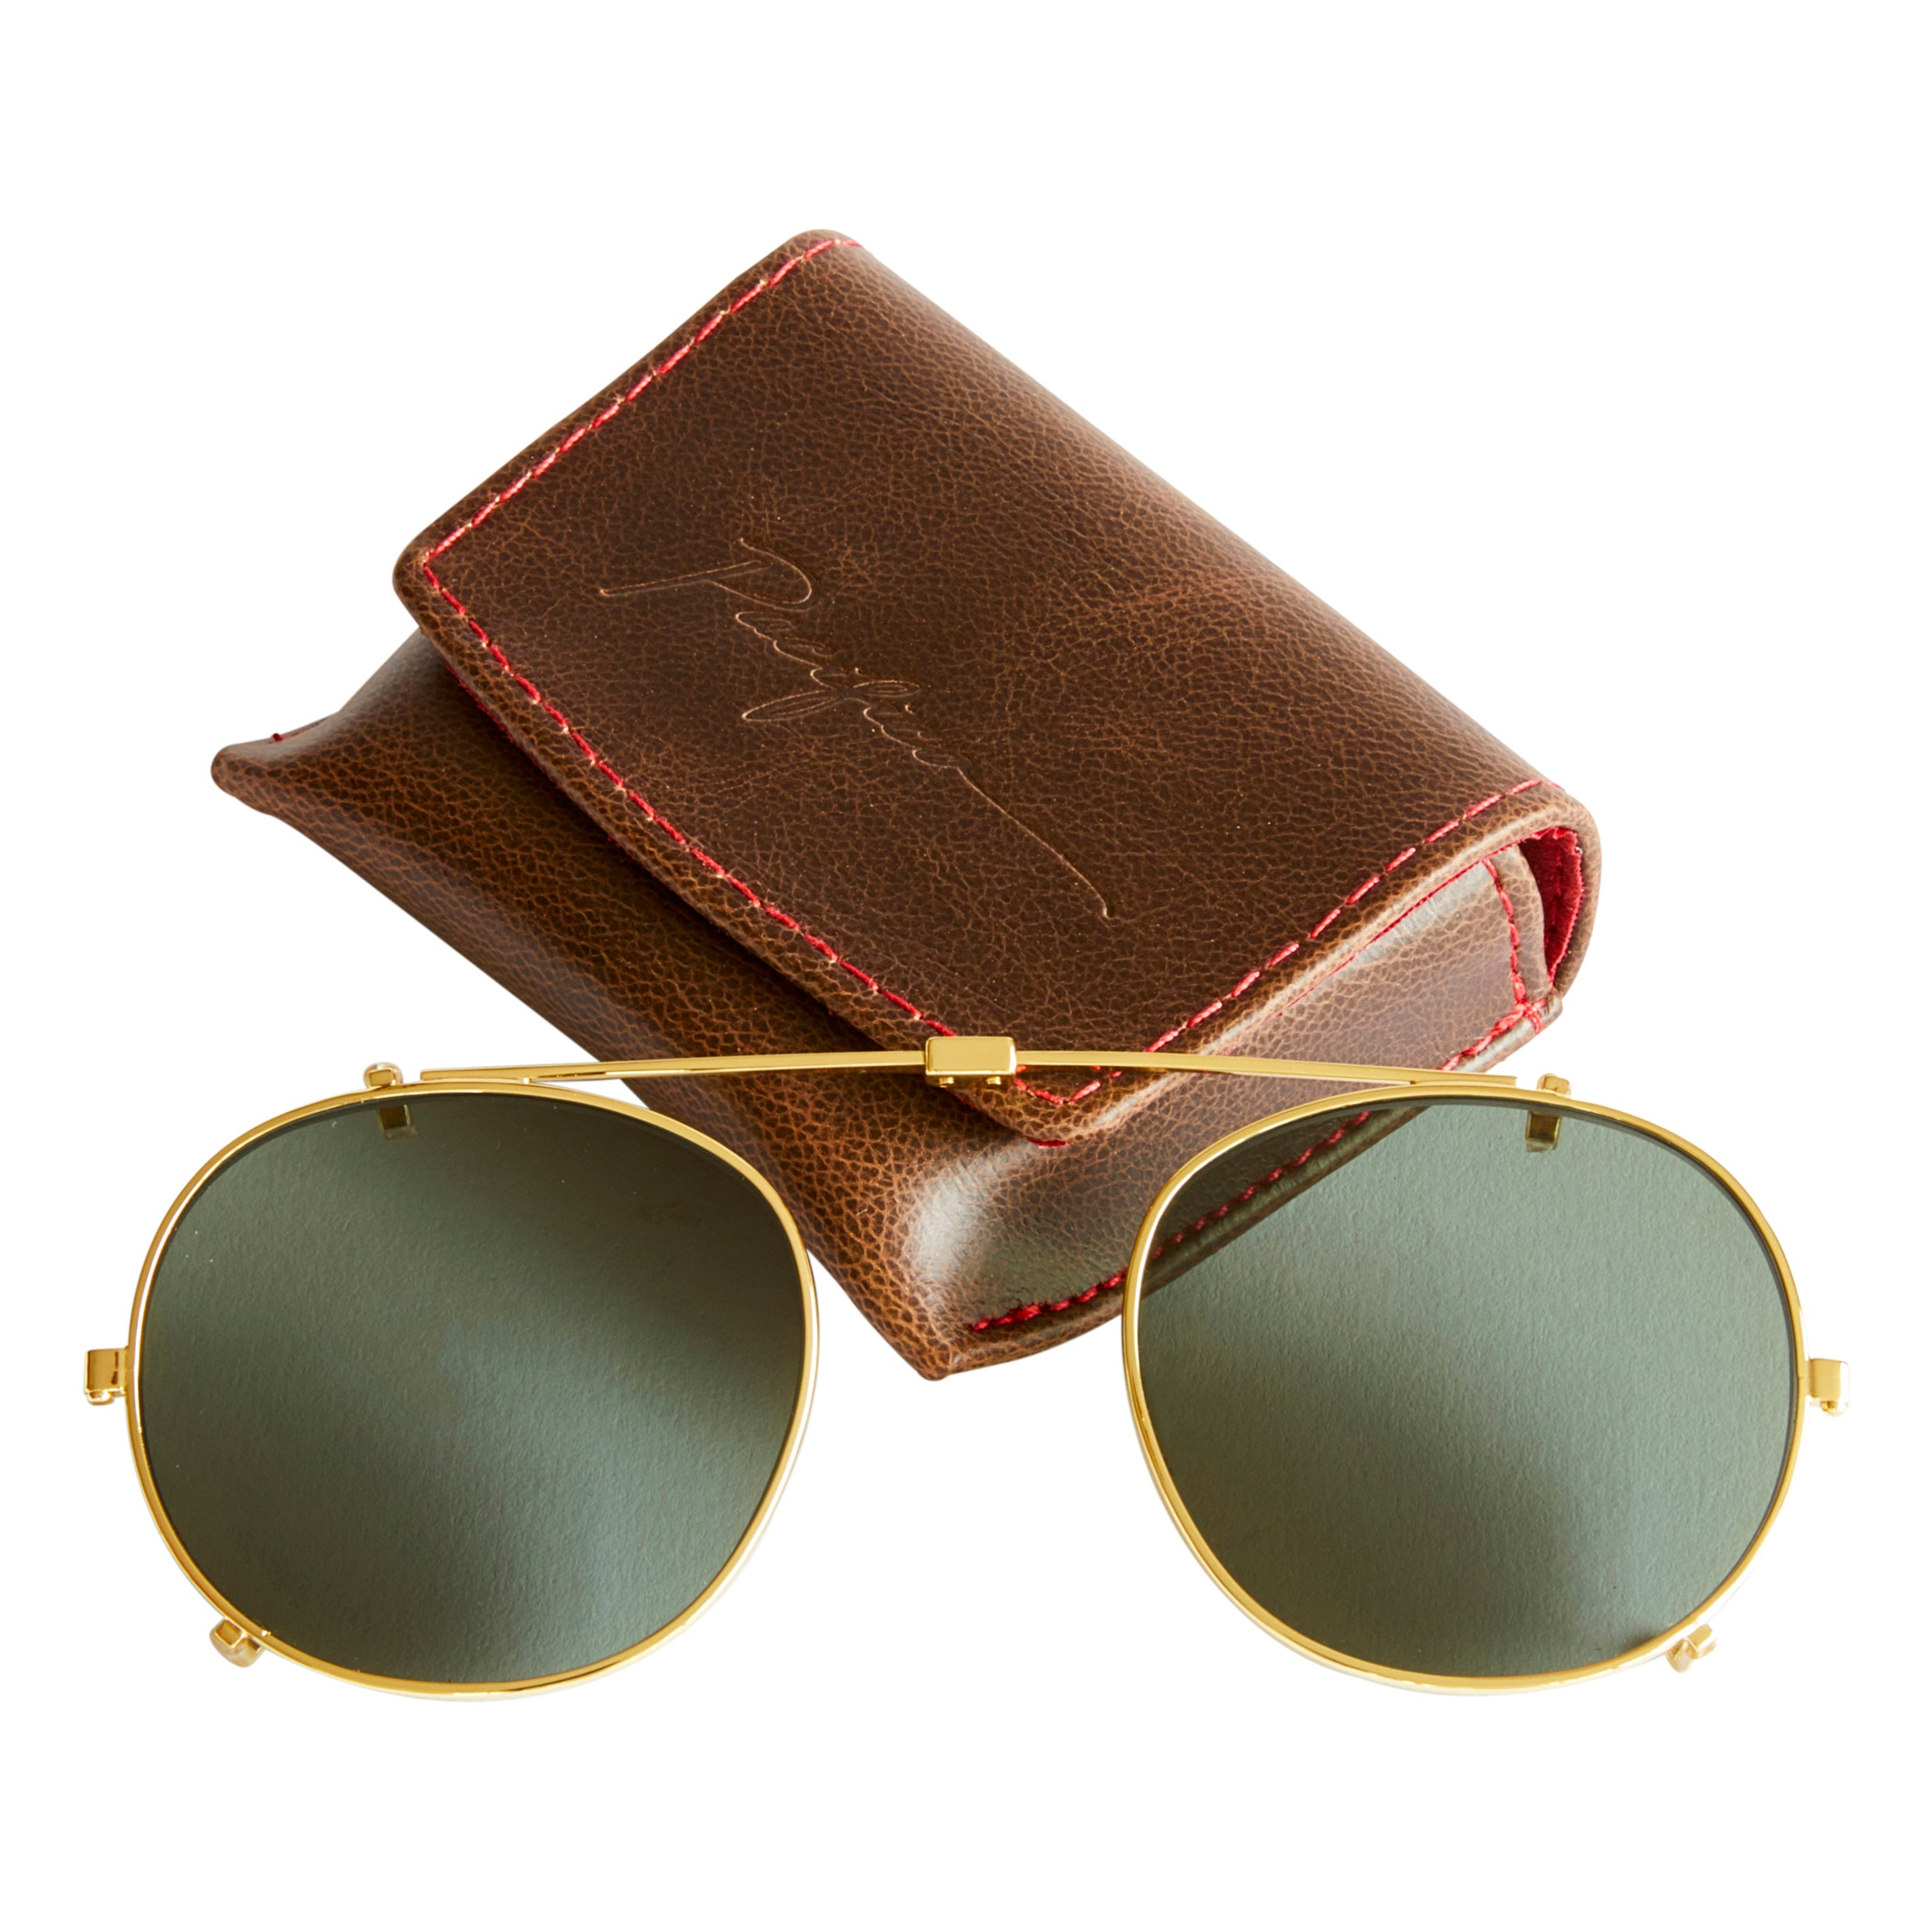 3cad1ae7639 Buckler Sun lens Clip - Green Polarised With Gold Steel - Pacifico Optical